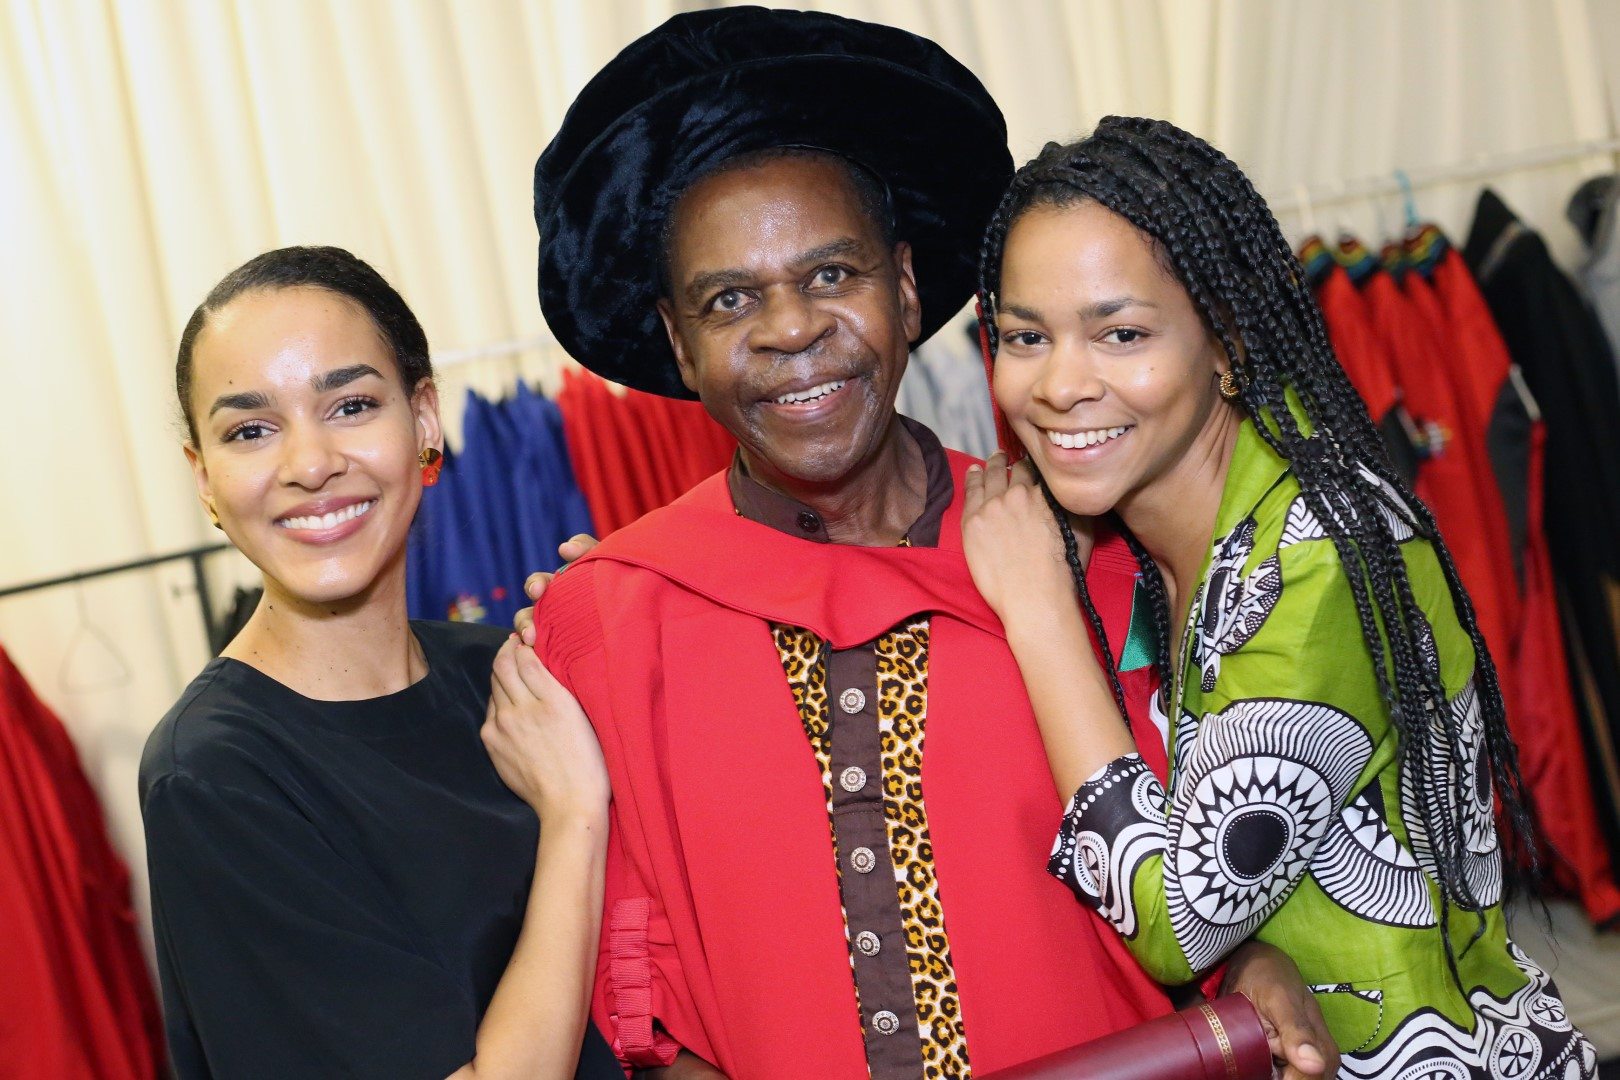 Honorary graduate, Dr Protas Madlala with his daughters Racquel (left) and Darienne.